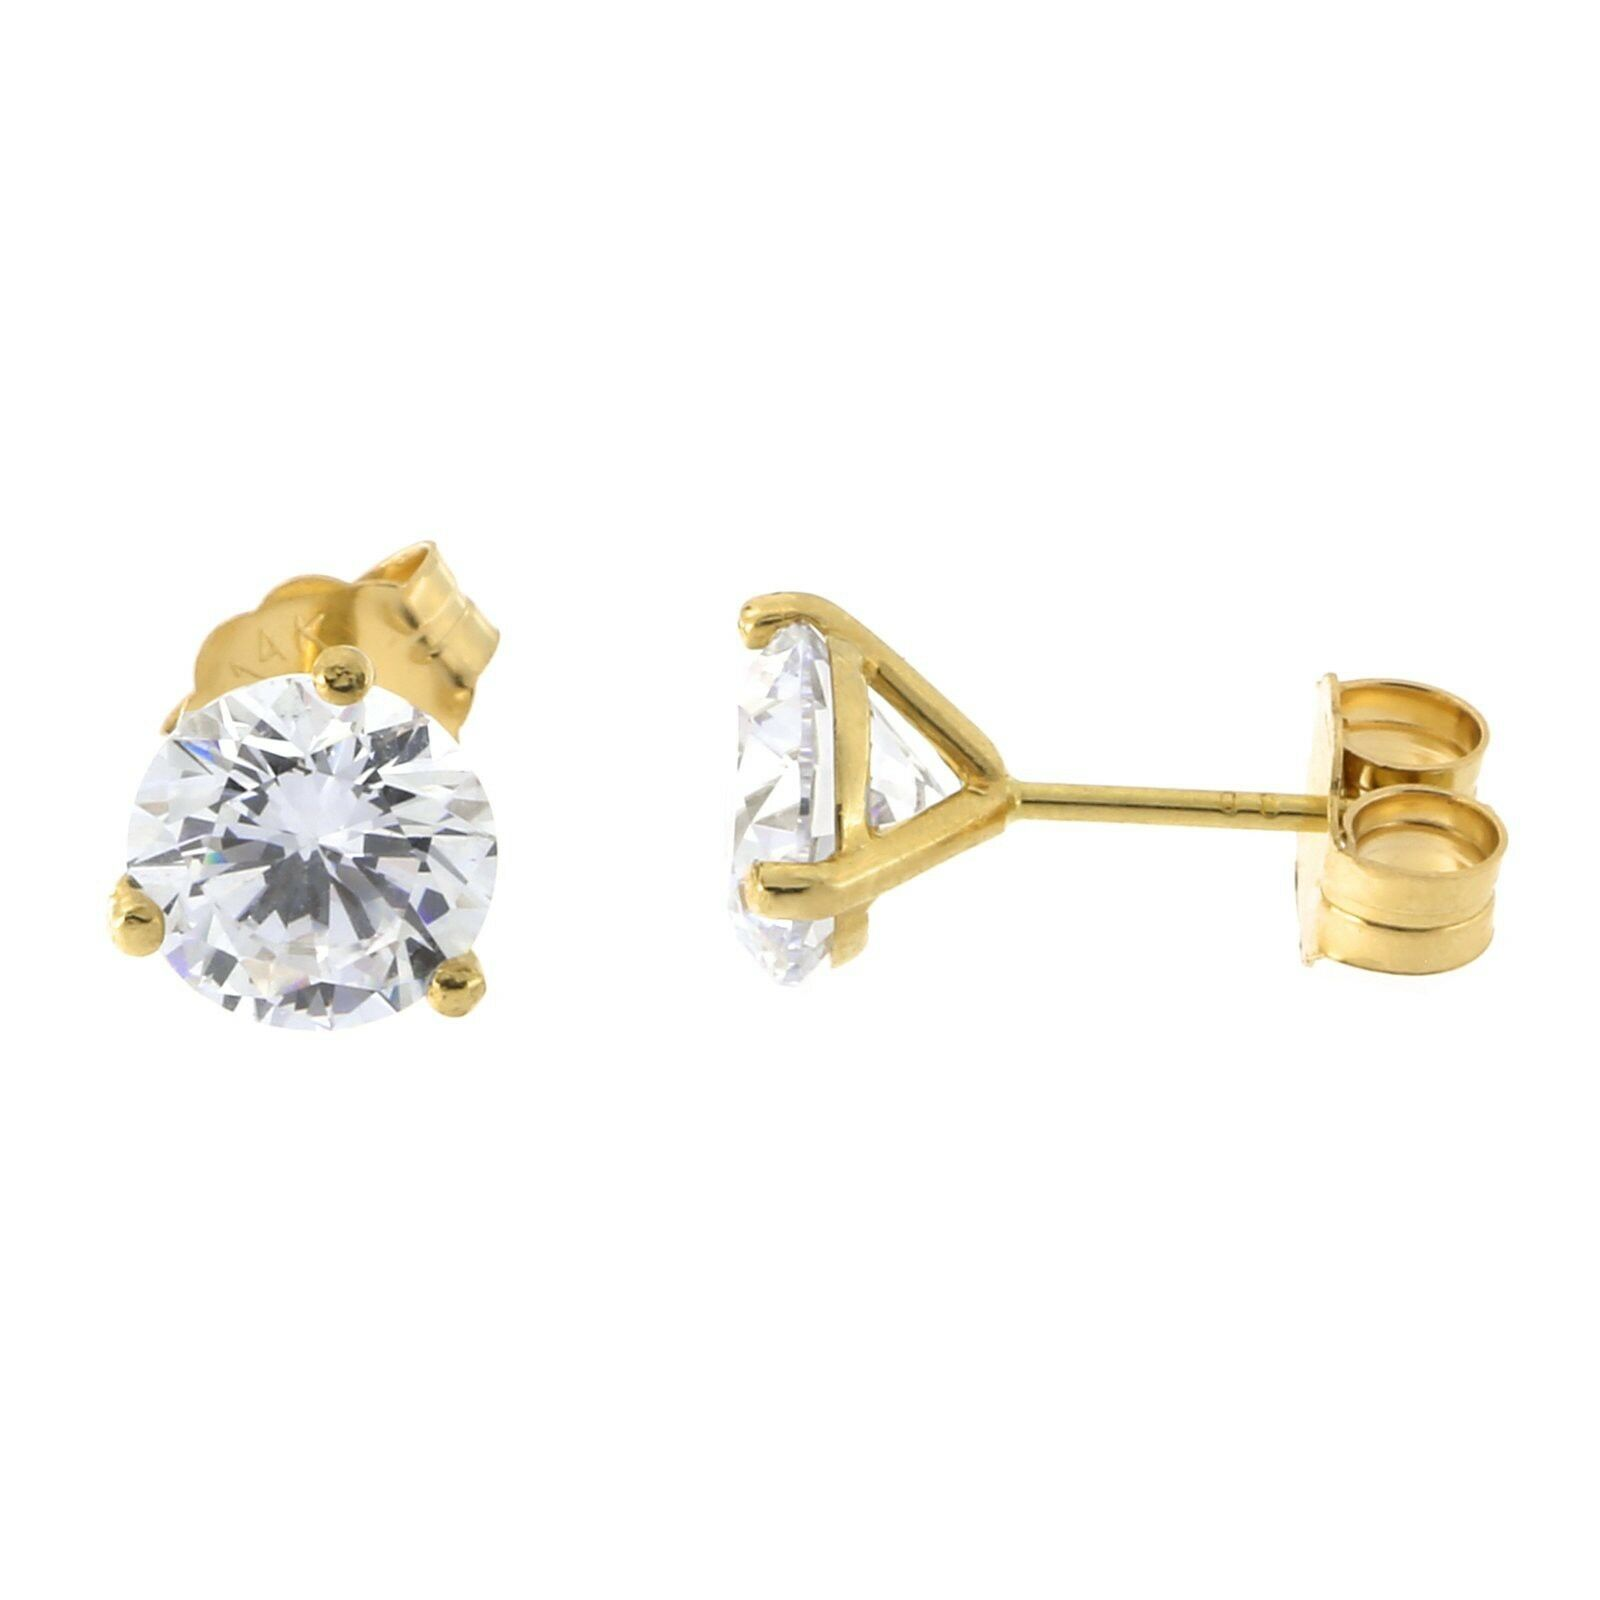 14k Yellow White gold Three Prong Martini Set Round AAA CZ Stud Earrings